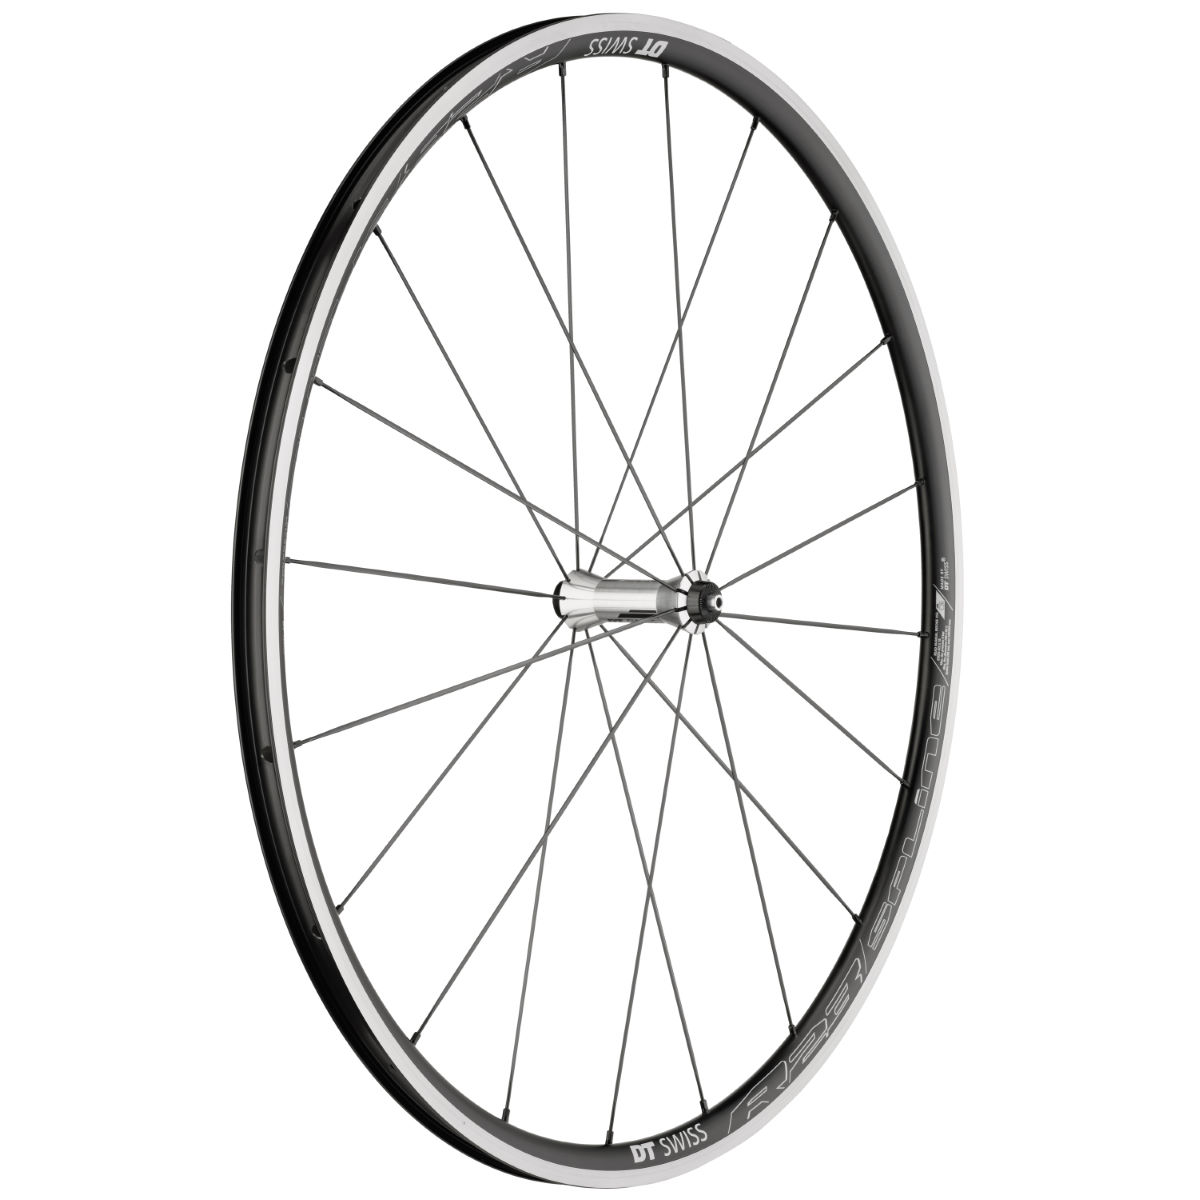 Roue avant DT Swiss R23 Spline (alliage) - 700c - Clincher Noir/Gris Roues performance